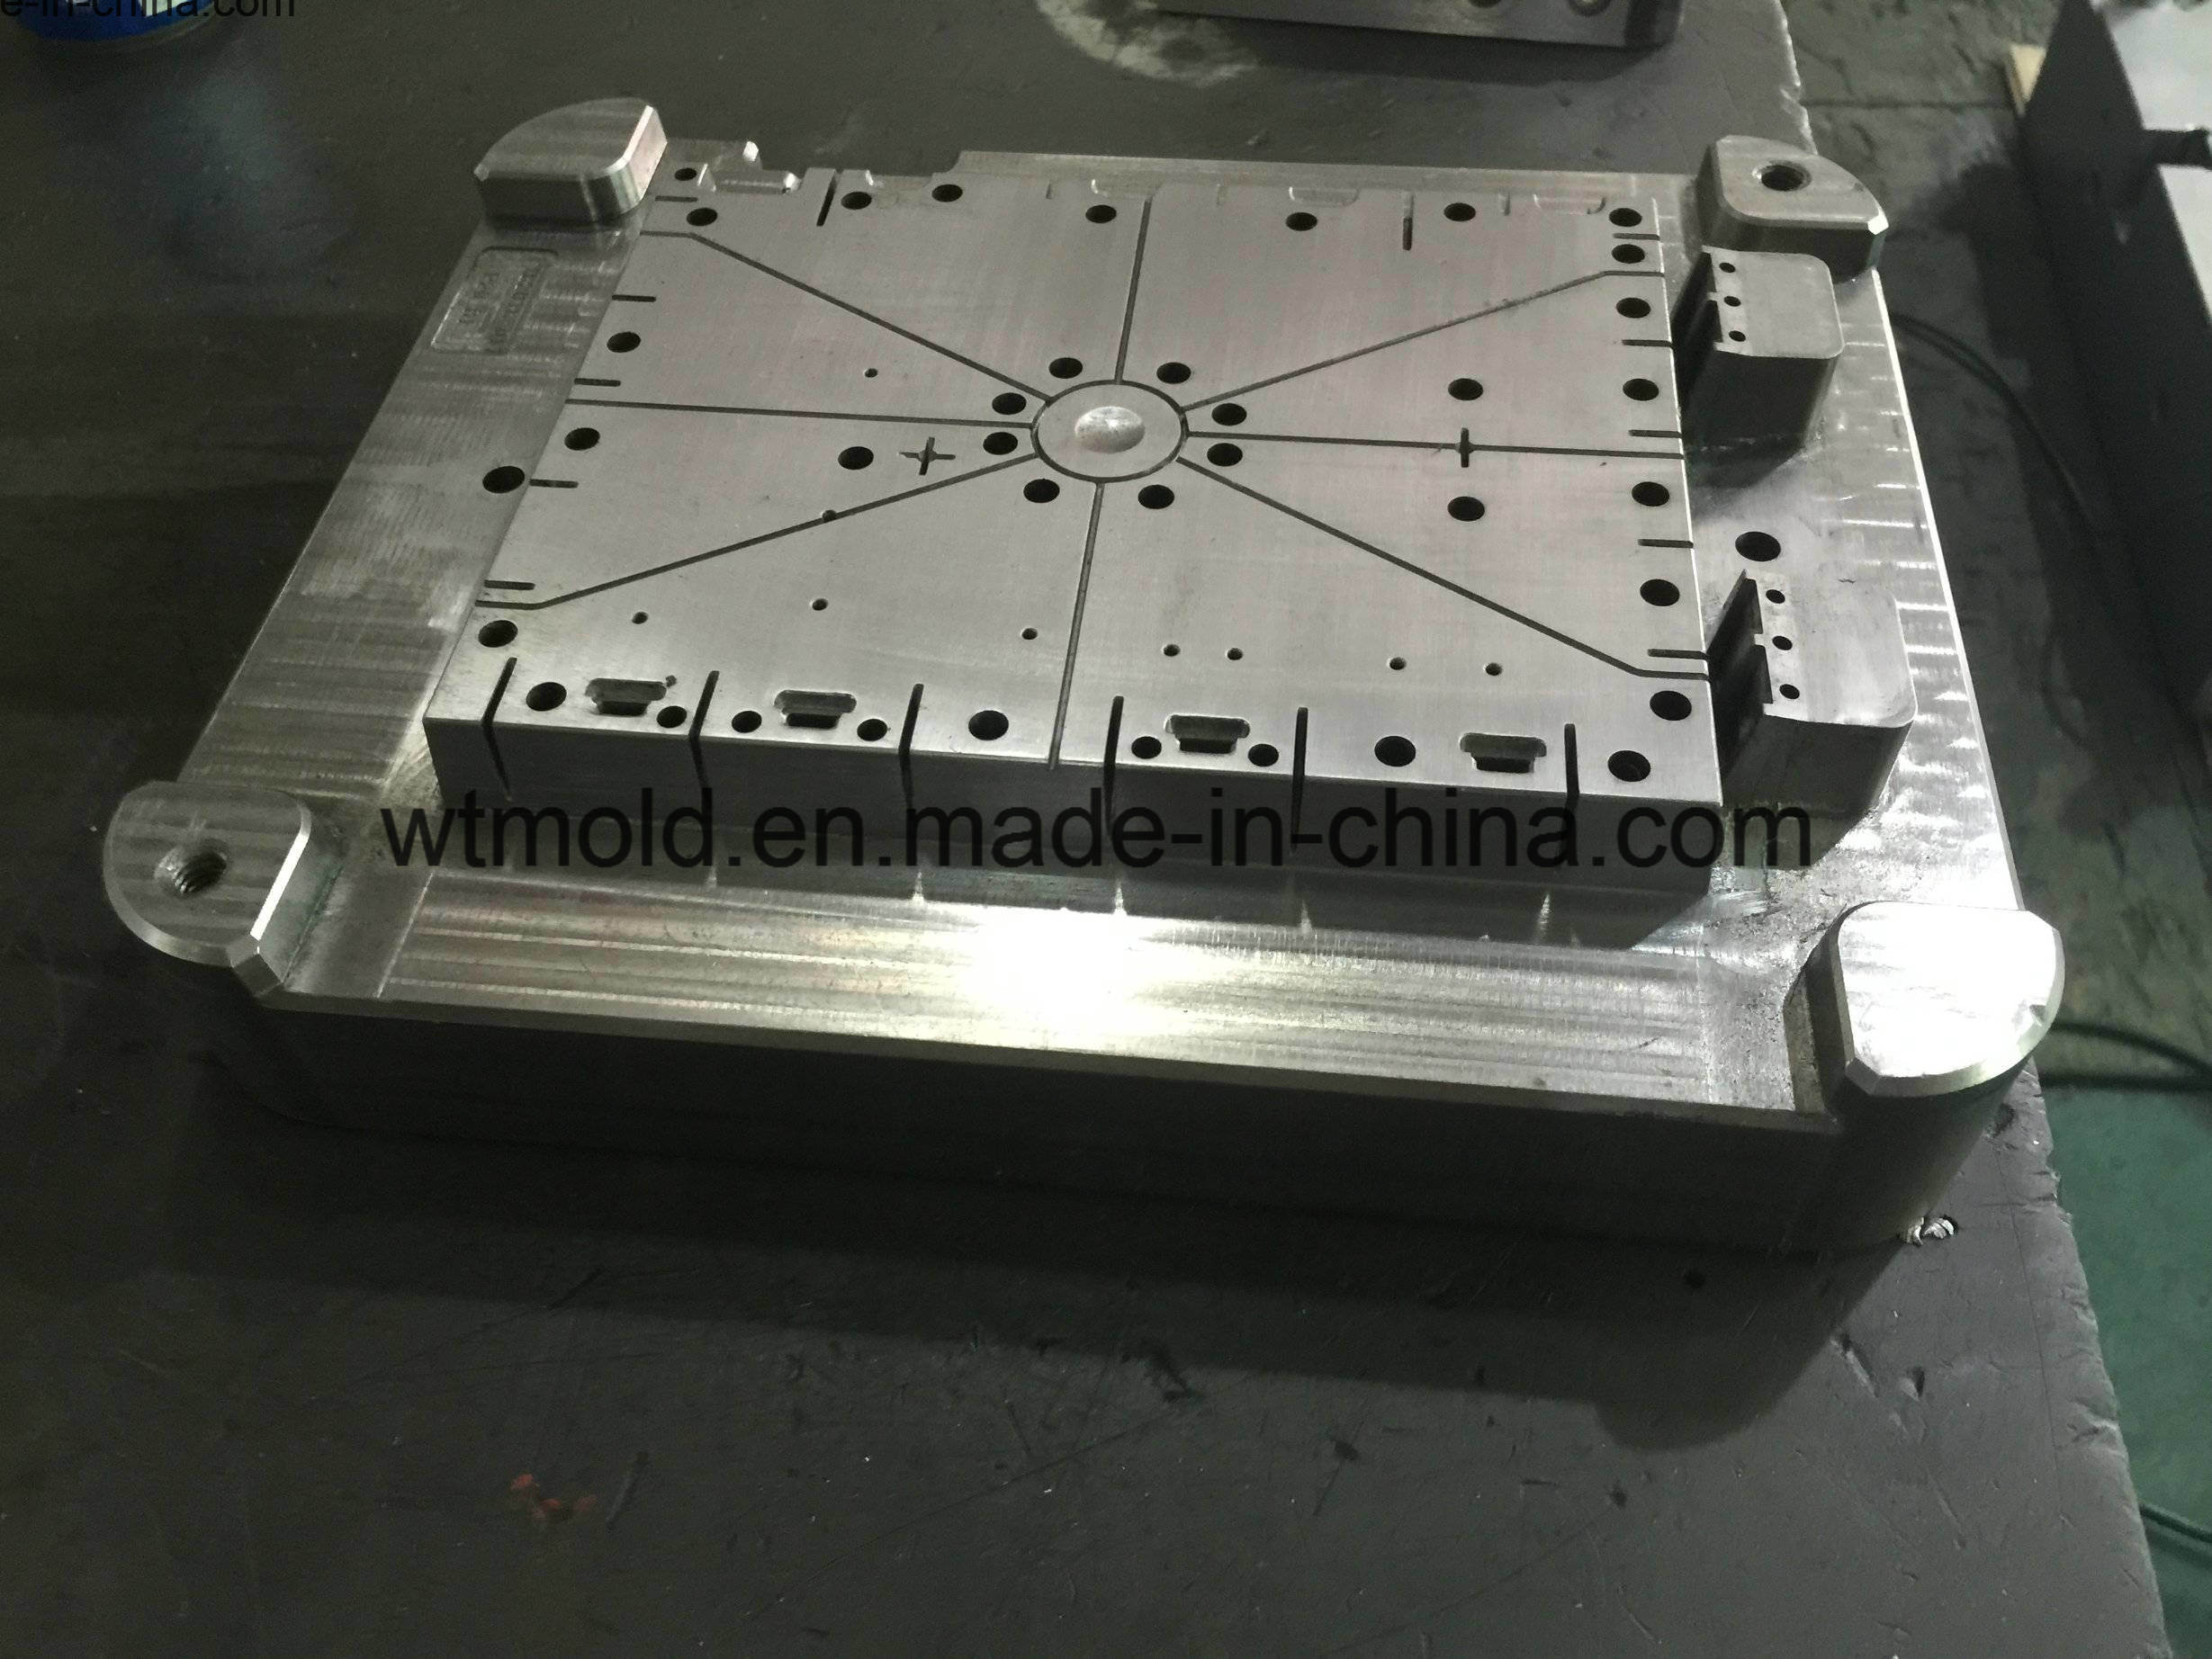 Export Europe Standard H13 P20 S136 718h Tooling for Plastic Injection  Molding